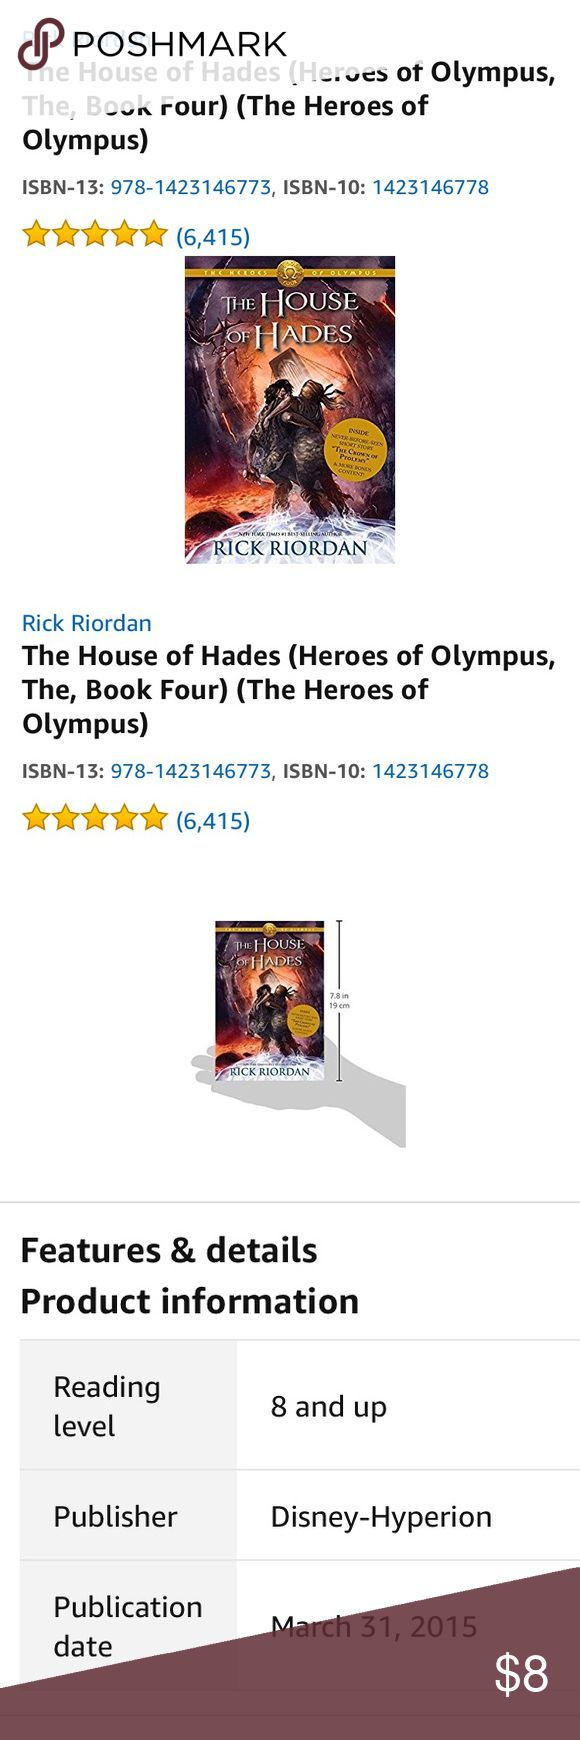 The House of Hades Heroes of Olympus 💗📖 The House of Hades (Heroes of Olympus, The, Book Four) (The Heroes of Olympus).  Rick Riordan is the #1 New York Times bestselling author of the Percy Jackson and the Olympians series, the Kane Chronicles, and the Heroes of Olympus. He is also the author of the multi-award-winning Tres Navarre mystery series for adults. Condition is gently used ⭐️⭐️⭐️⭐️⭐️✅ Disney Other